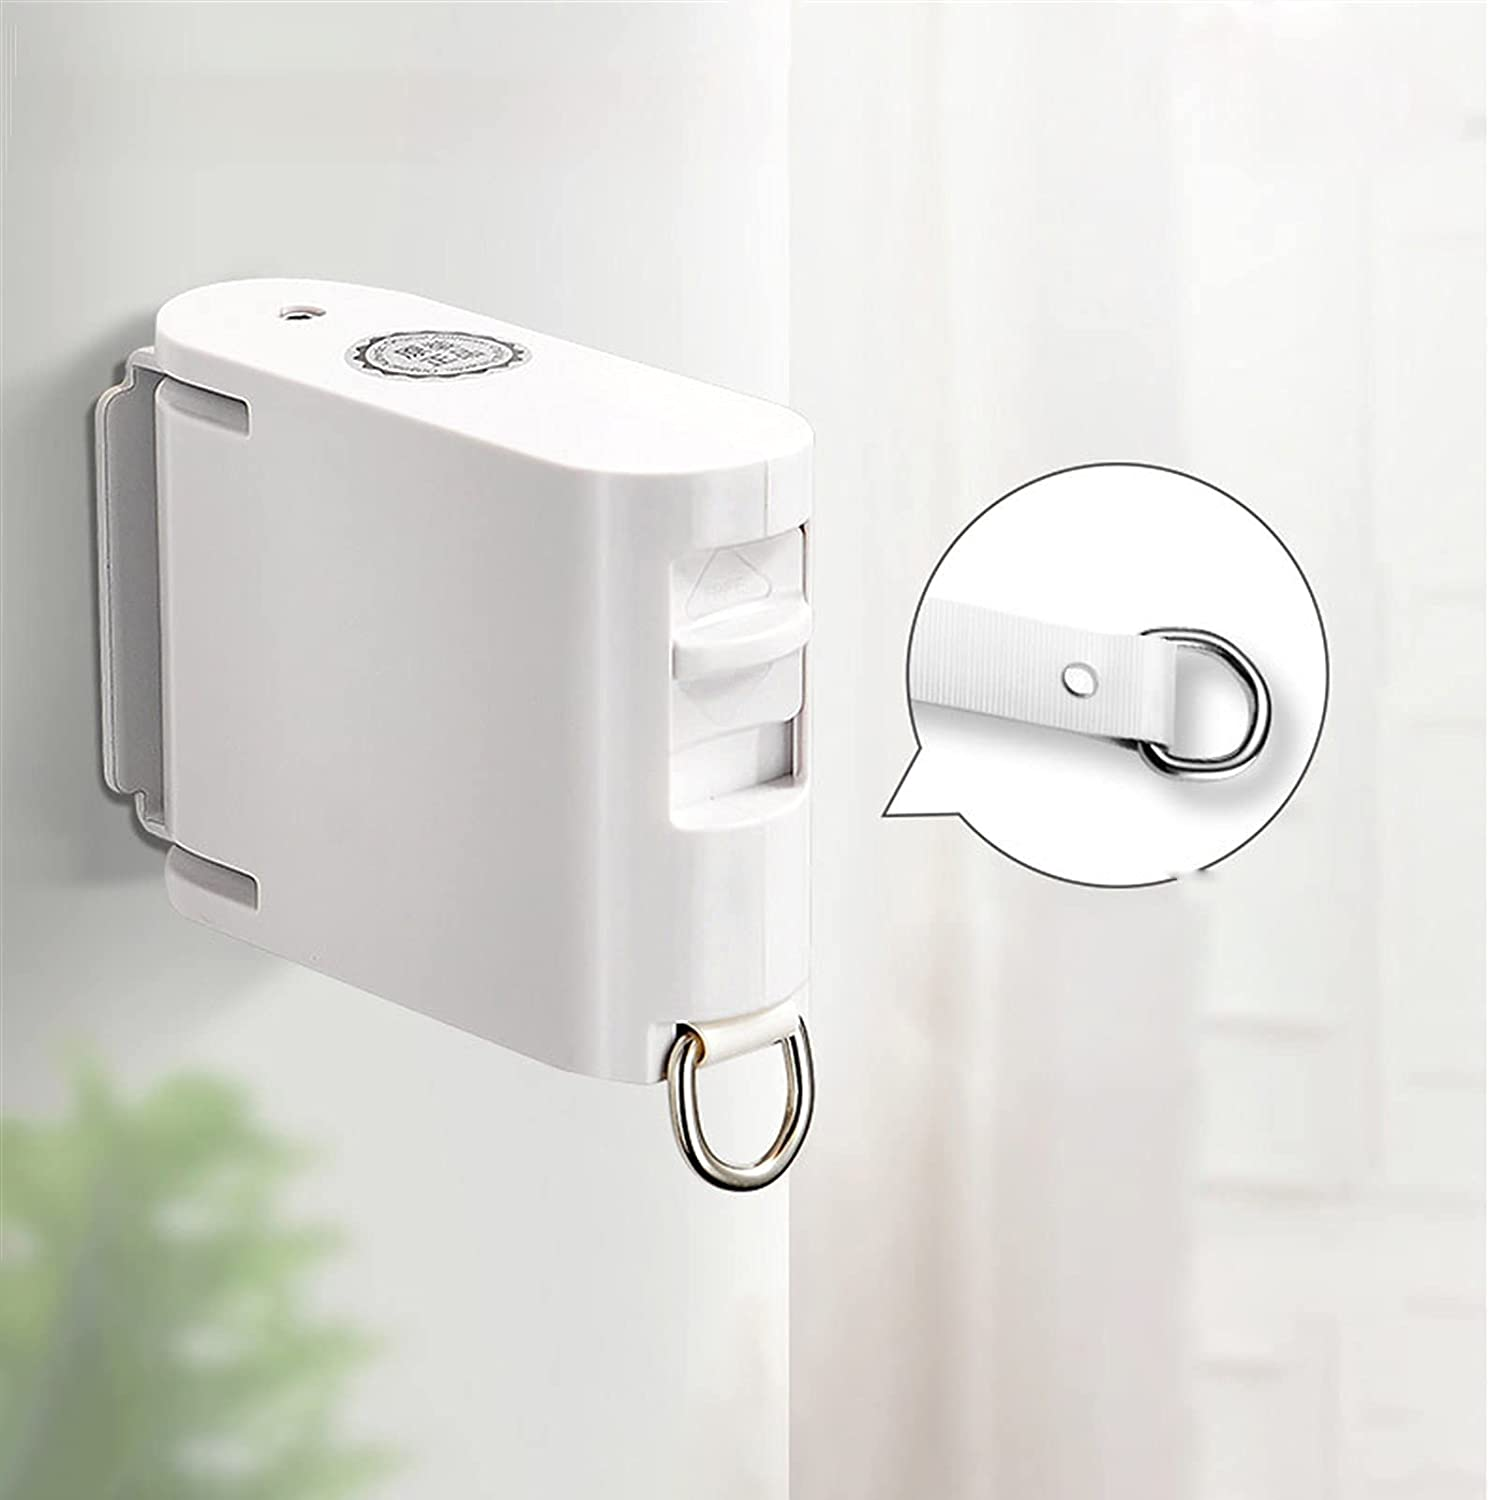 WXYNT Wall Mounted Retractable Laundr Outdoor Memphis Selling Mall Indoor Clothesline